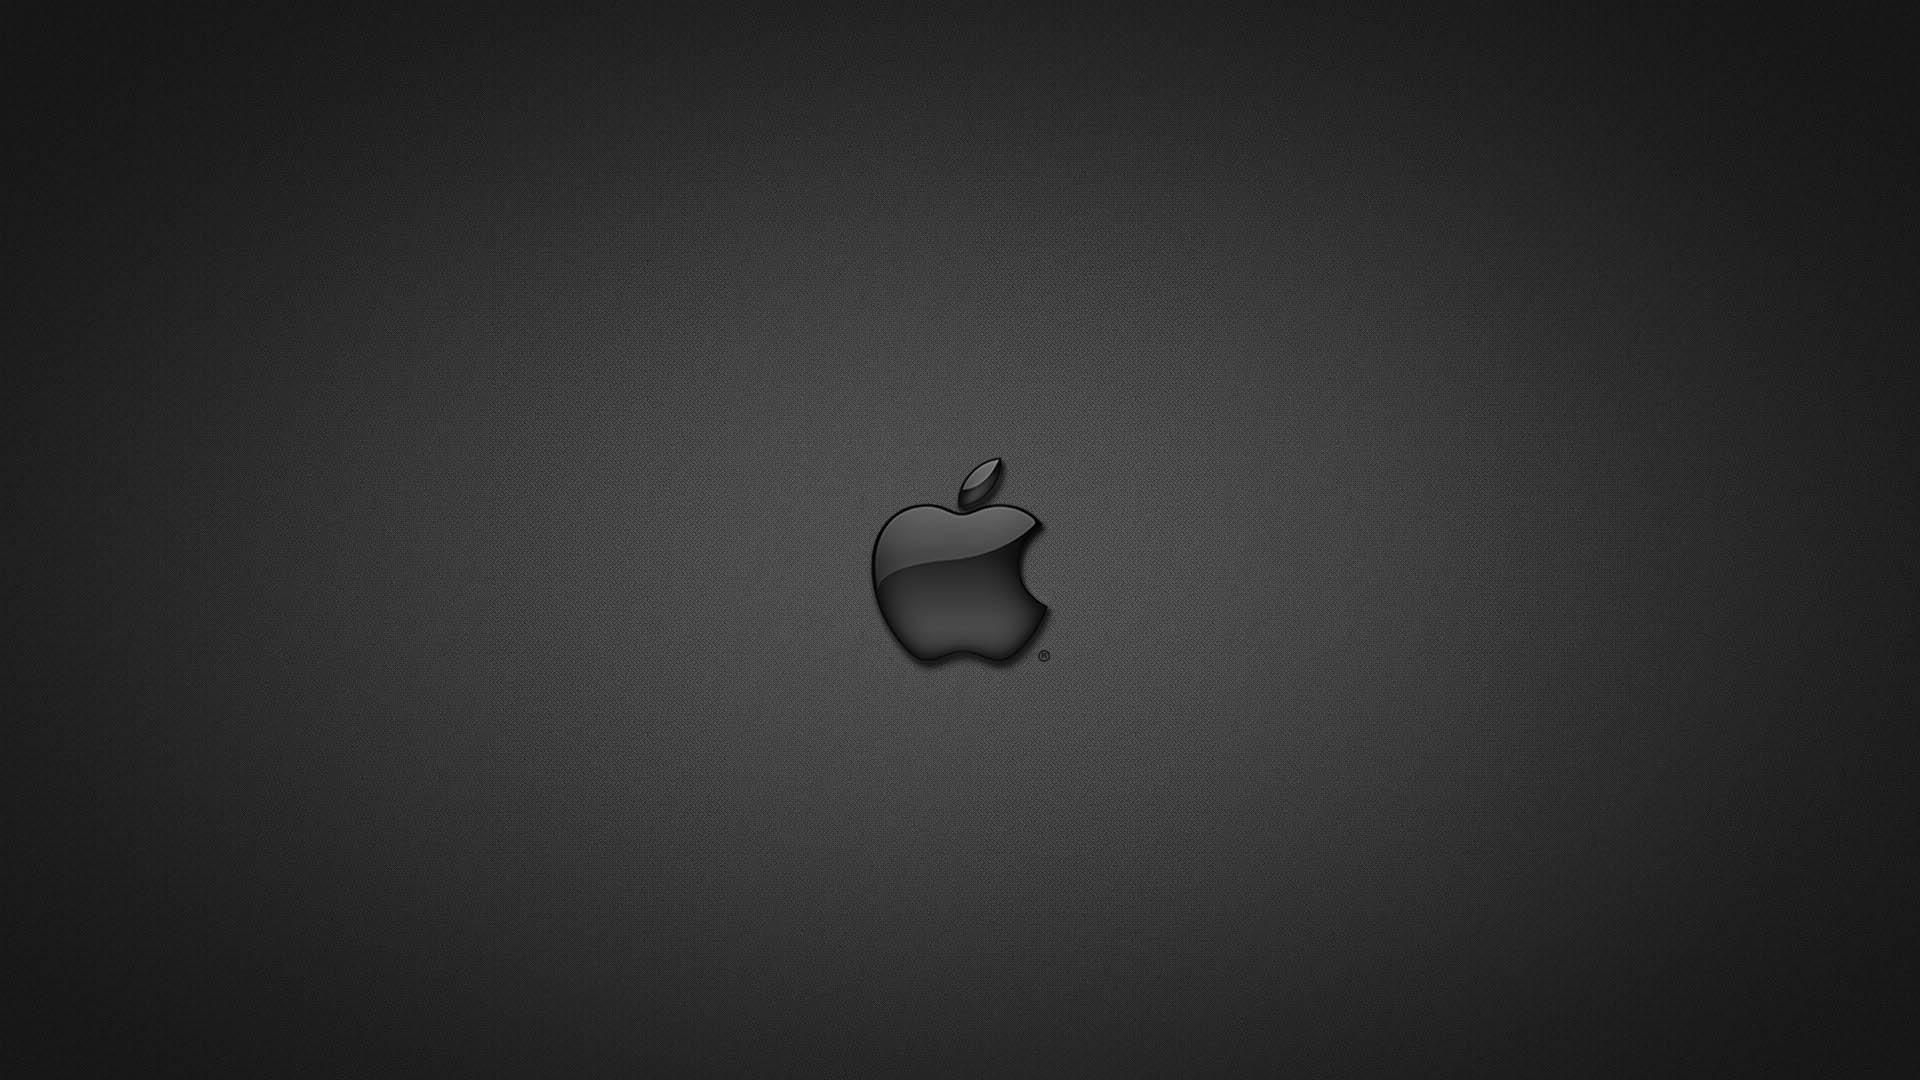 Image Result For Apple Iphone Wallpapers Free Apple Wallpaper Apple Wallpaper Iphone Apple Logo Wallpaper